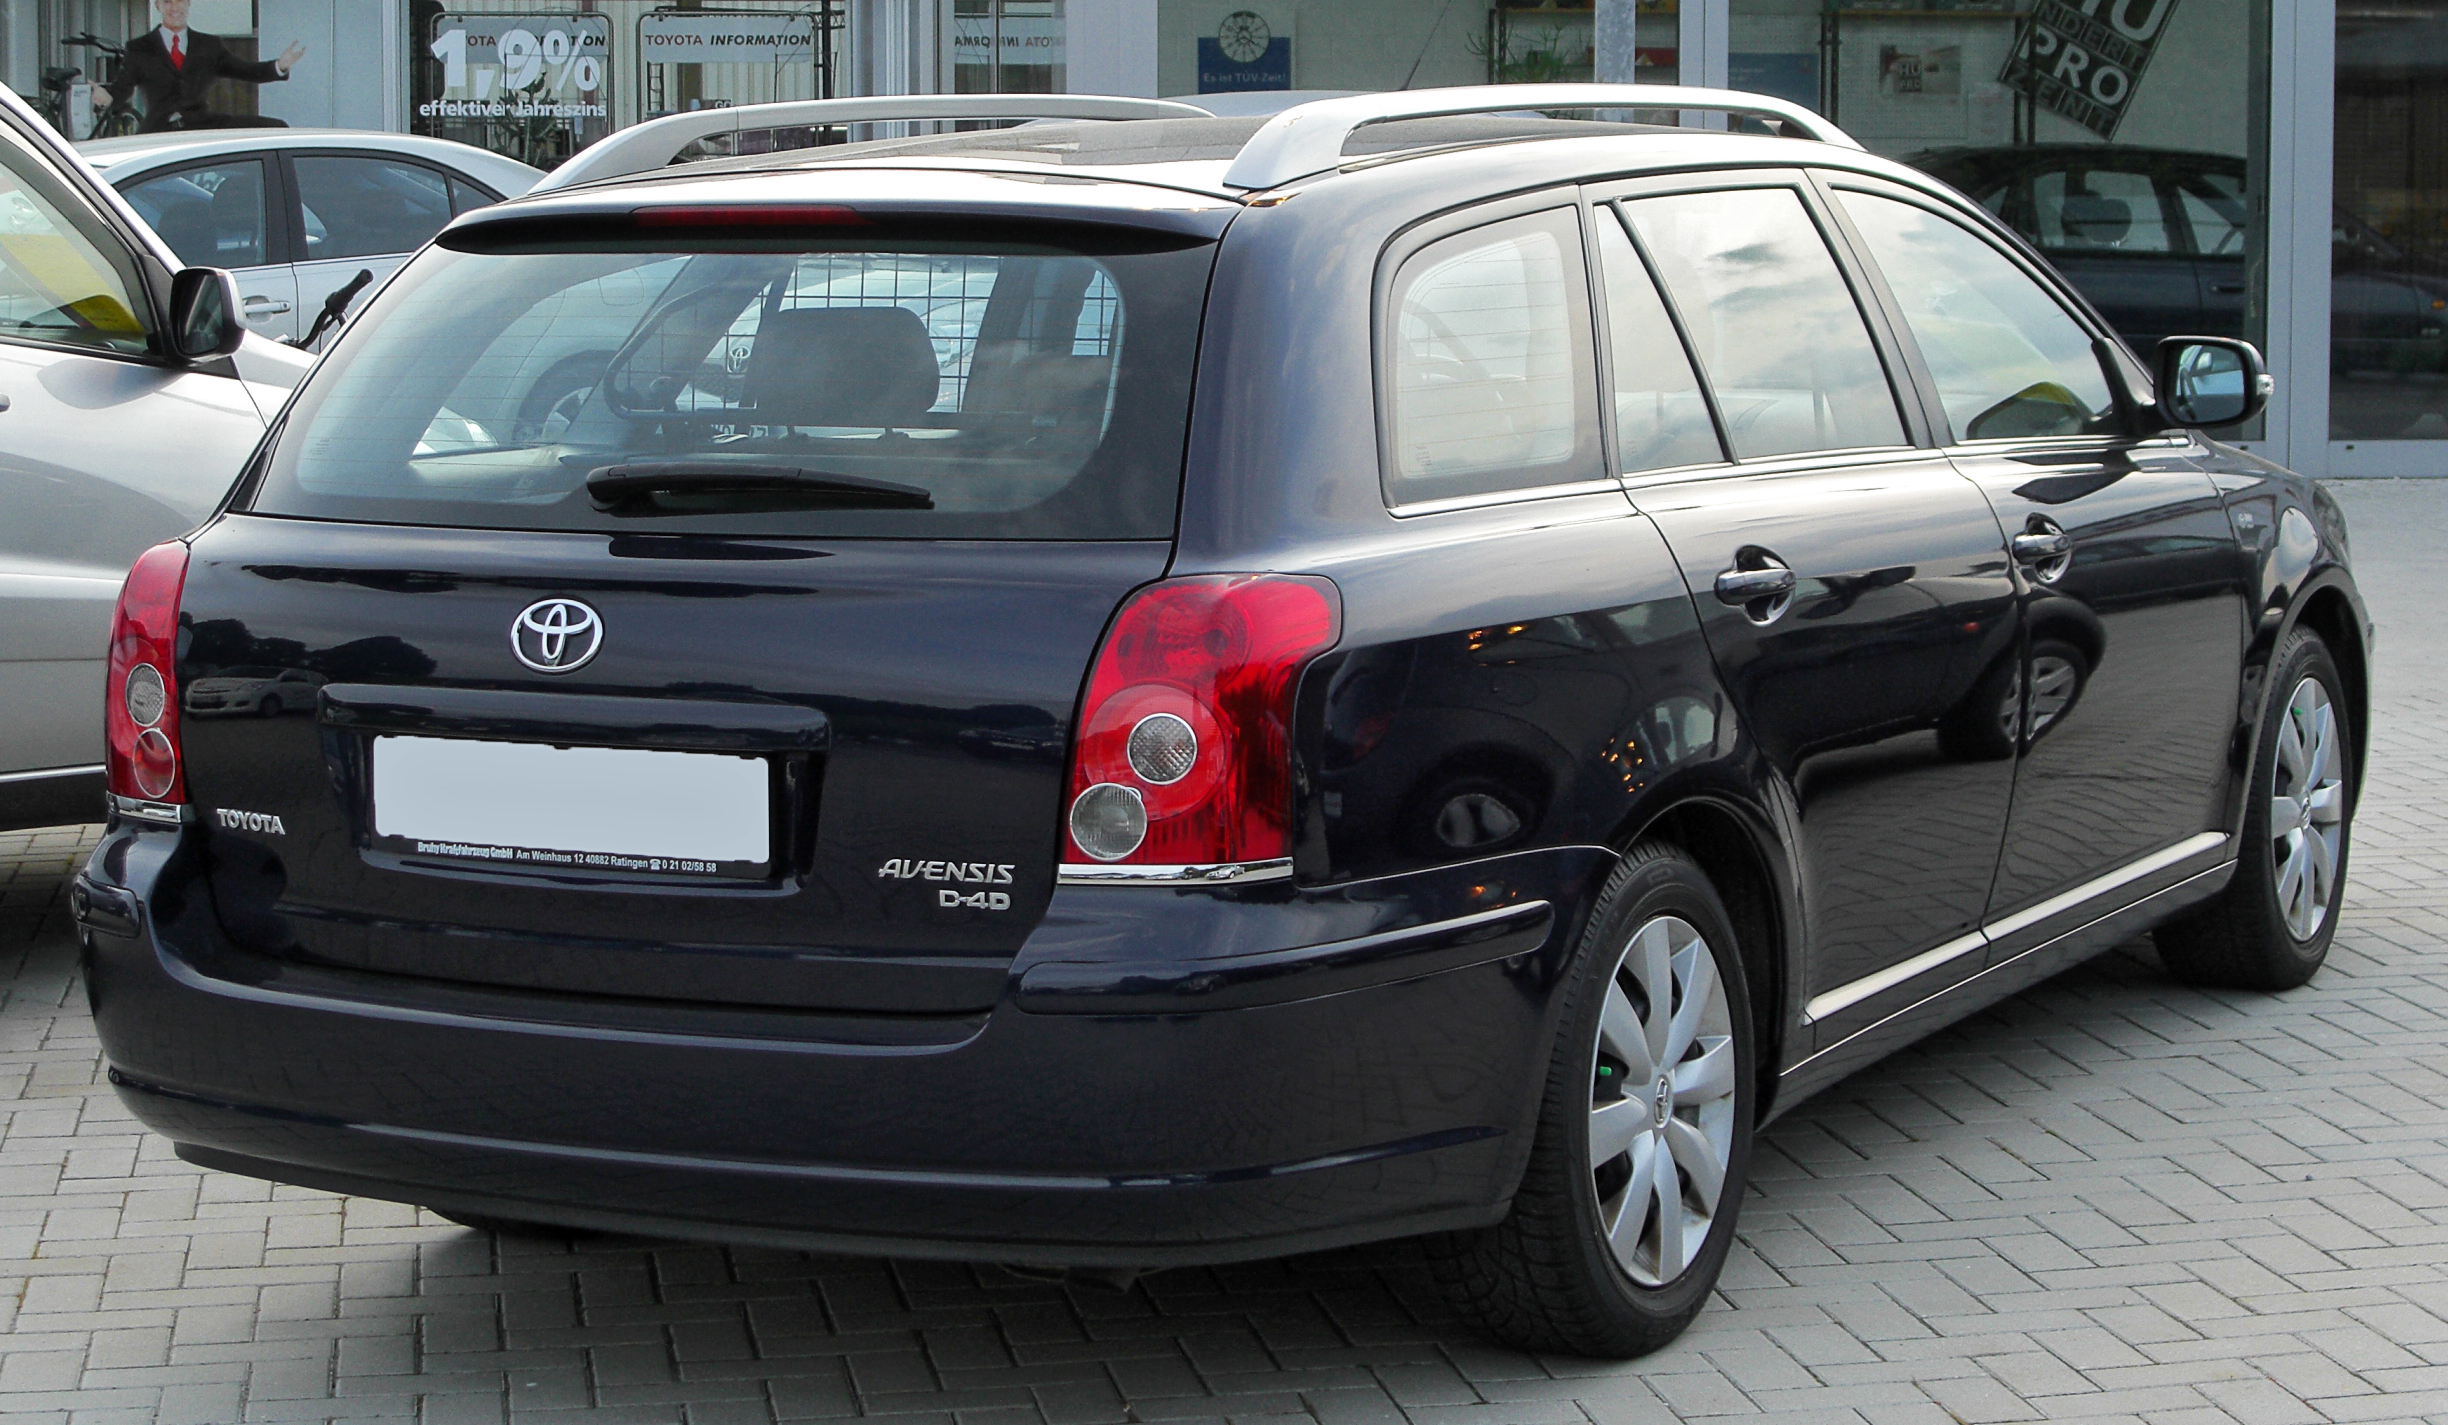 toyota avensis 2.0 d-4d combi-pic. 1